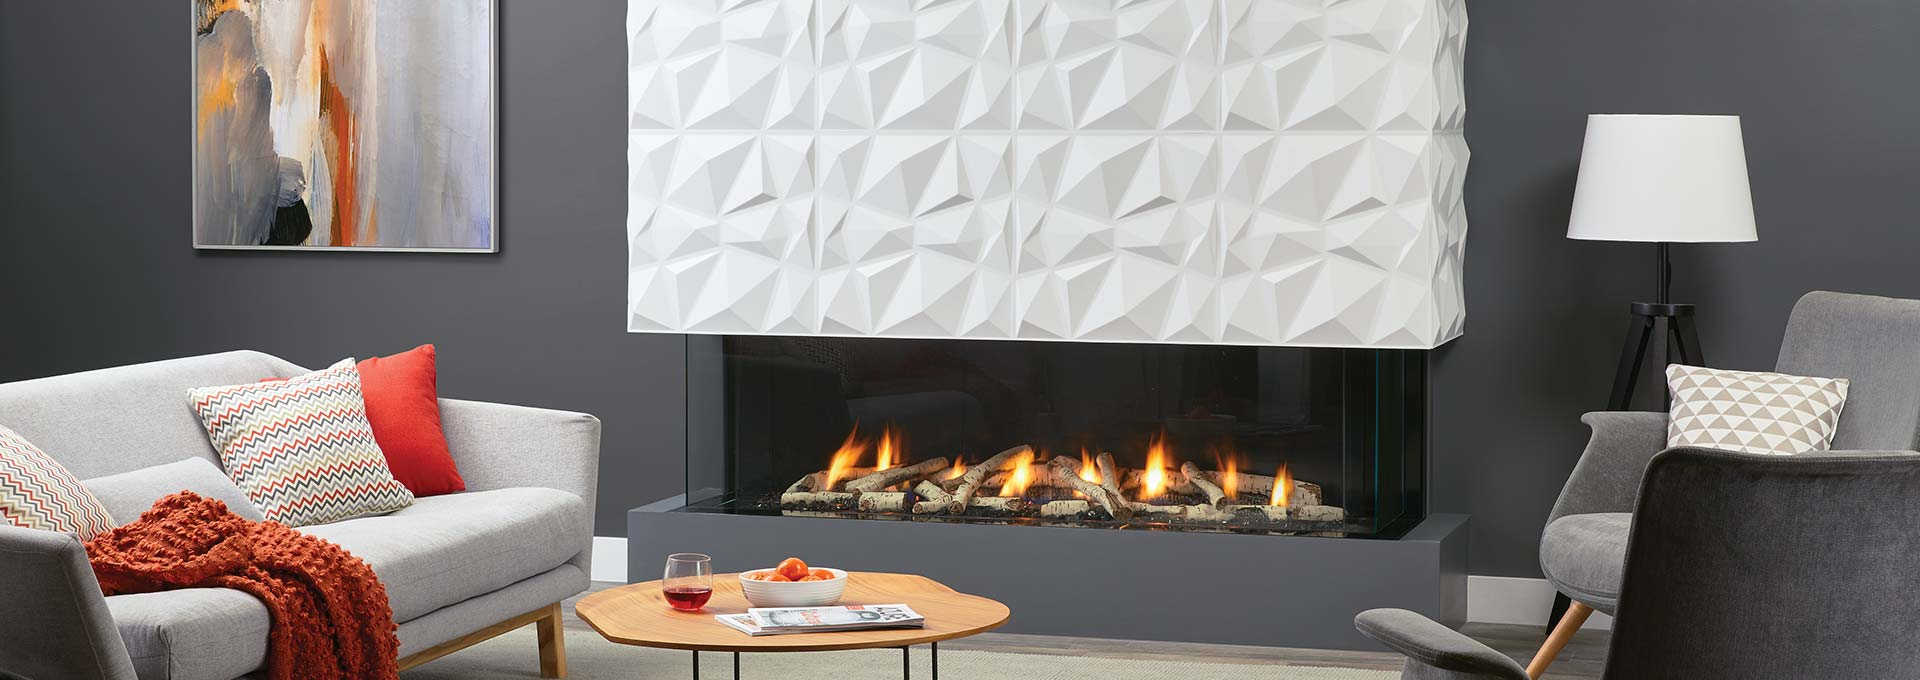 Regency Fireplace Products Gas Inserts Wood Stoves More